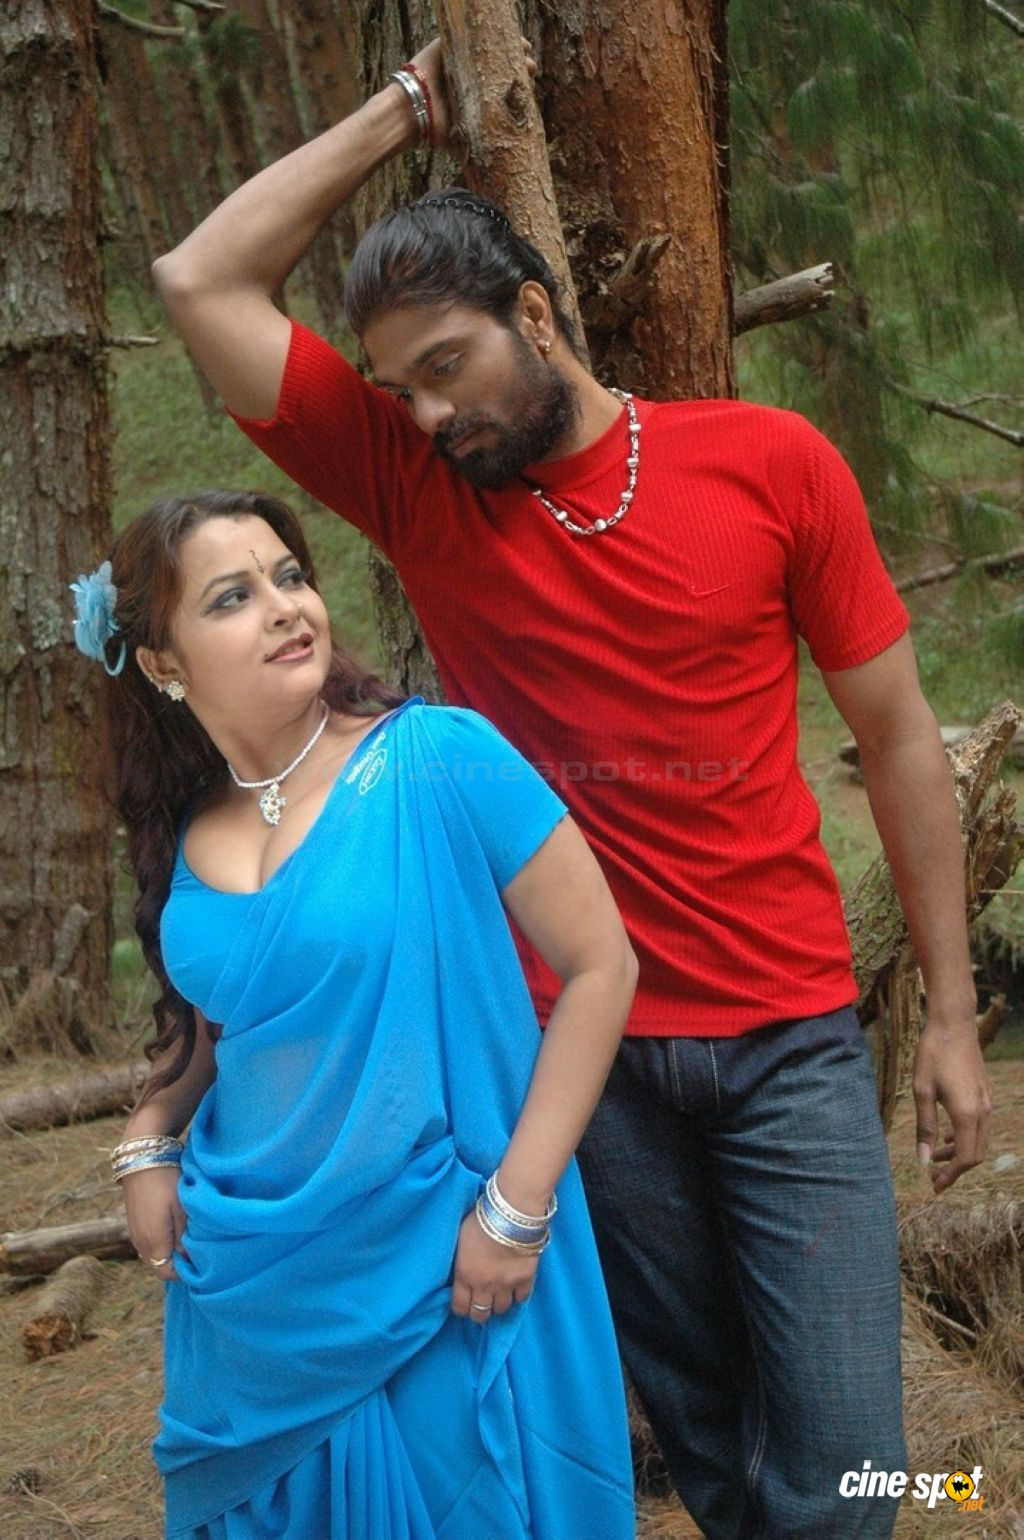 thiruttu sirukki hot images thiruttu sirukki hot pictures thiruttu